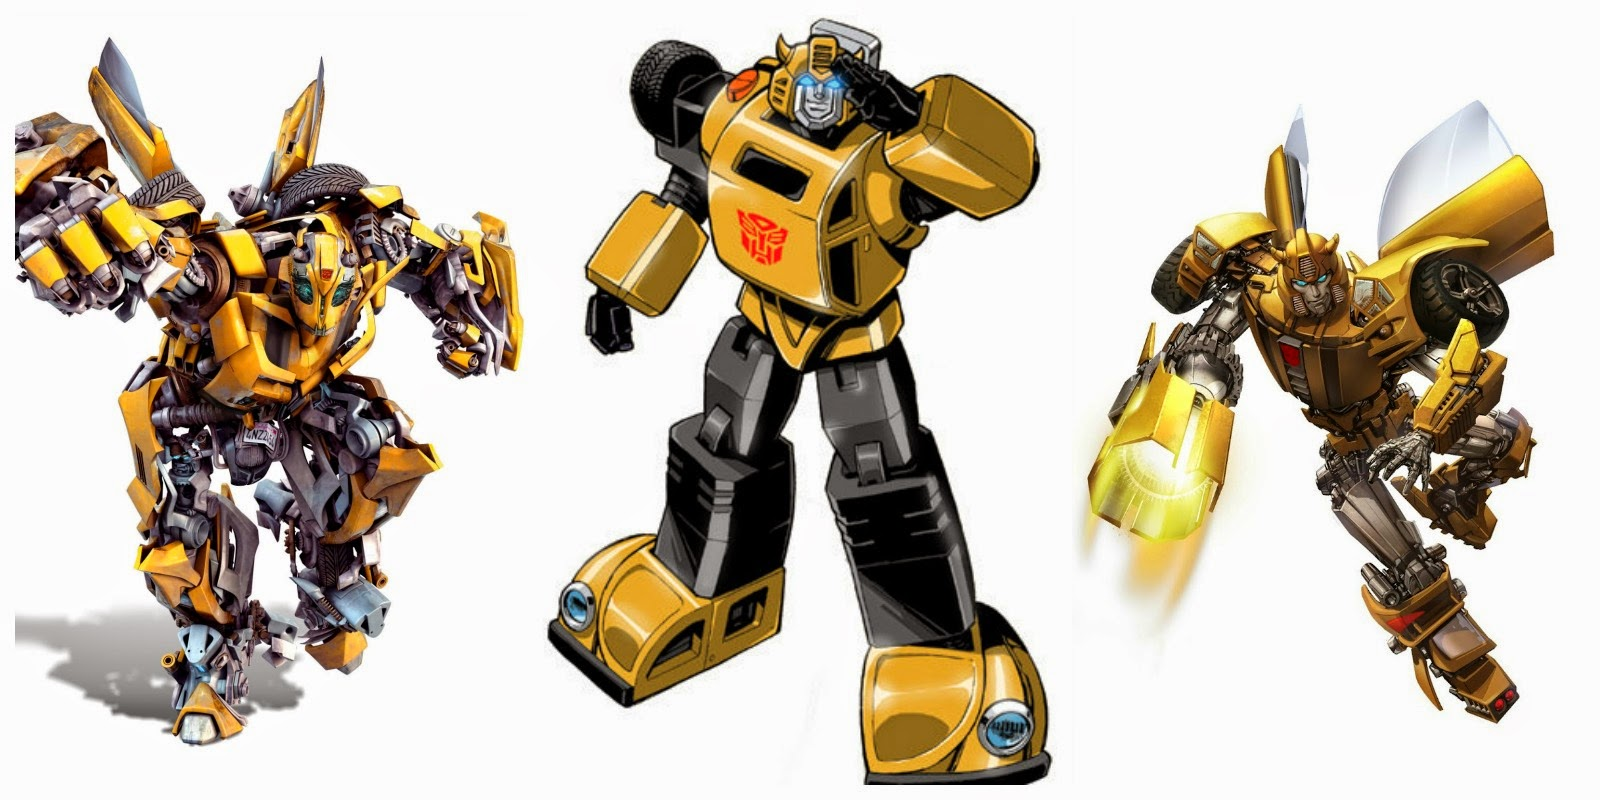 Friend to autobots and humans alike bumblebee is the best transforming friend anyone could ask for in any version bumblebee is extremely likeable